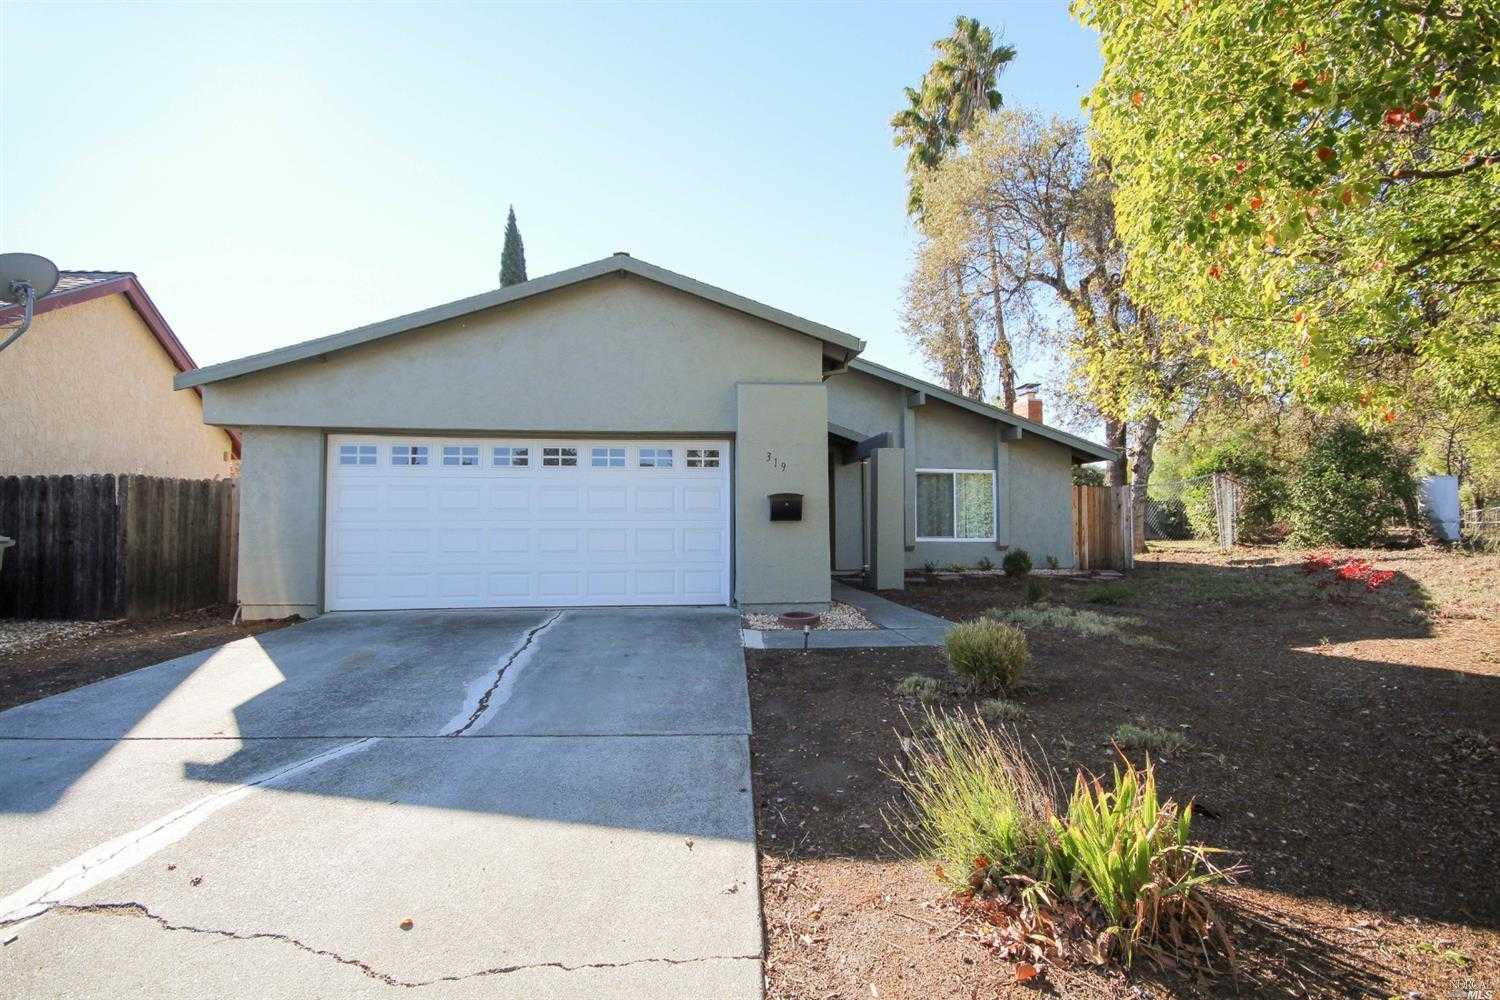 $405,000 - 4Br/2Ba -  for Sale in Vacaville